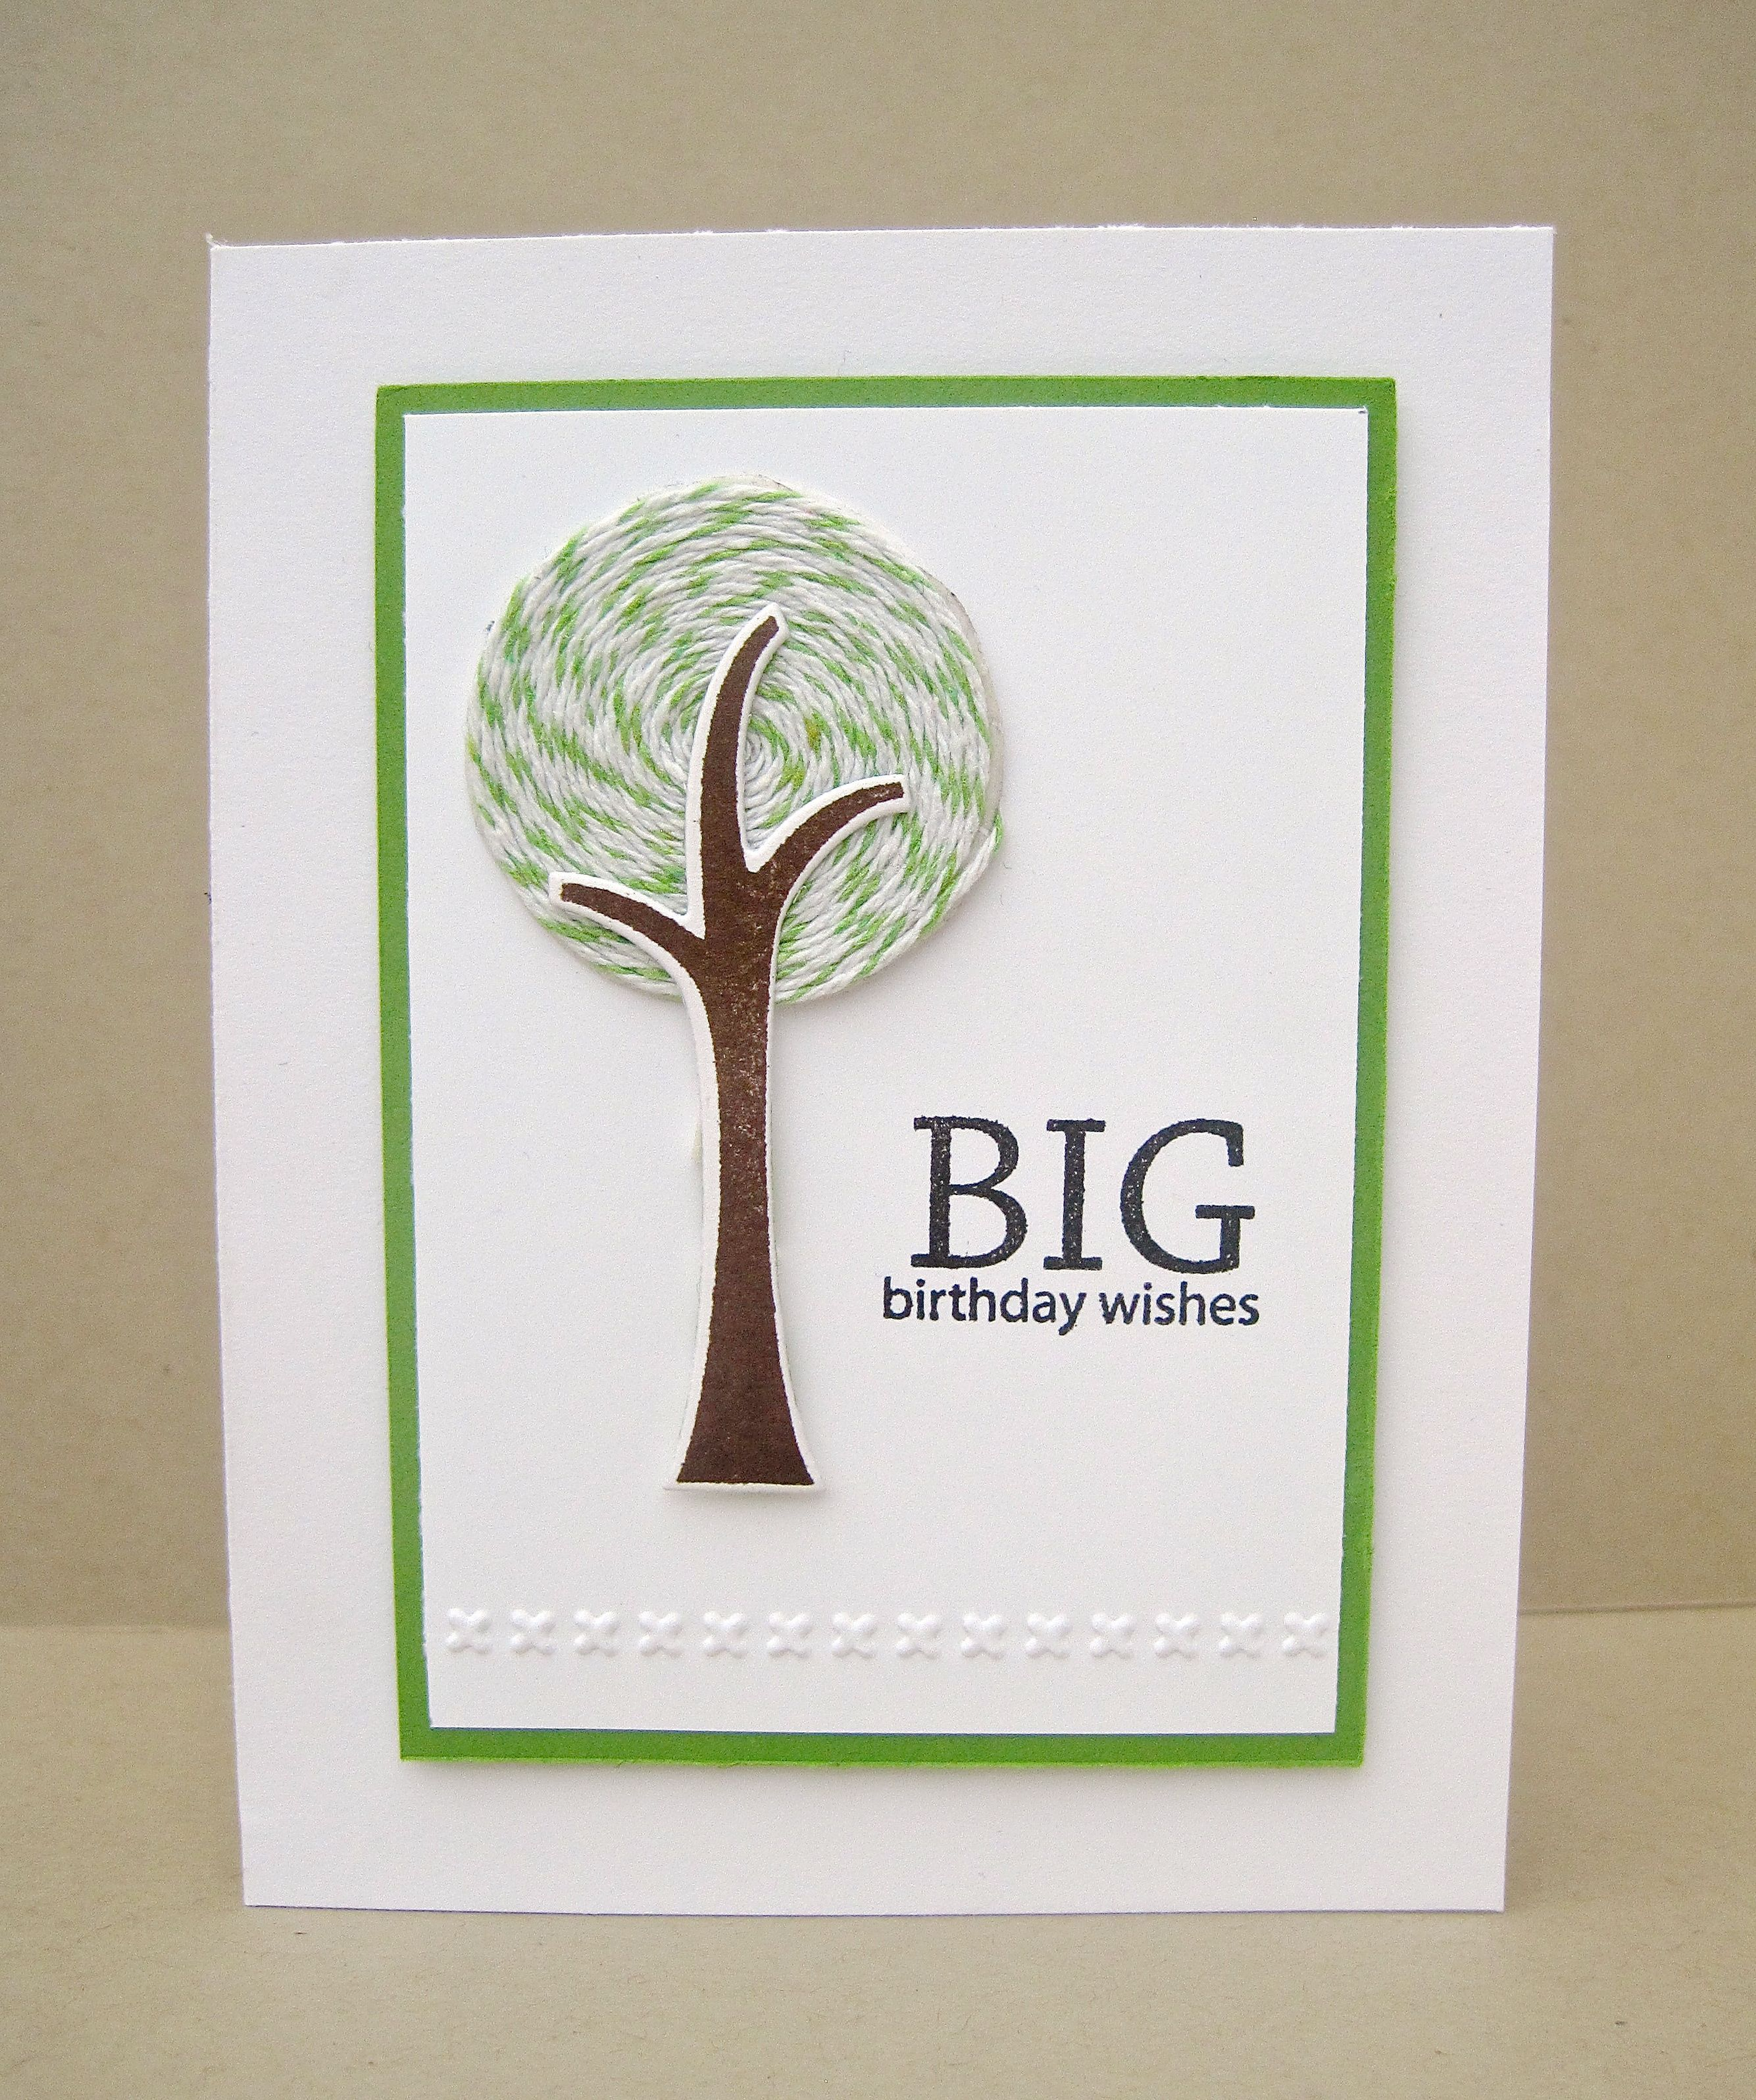 Card Making Inspiration Ideas Part - 24: Img_1251.jpg (2669×3191) Glubber Glue Spot Idea | Card Making Inspiration |  Pinterest | Card Making Inspiration And Cards